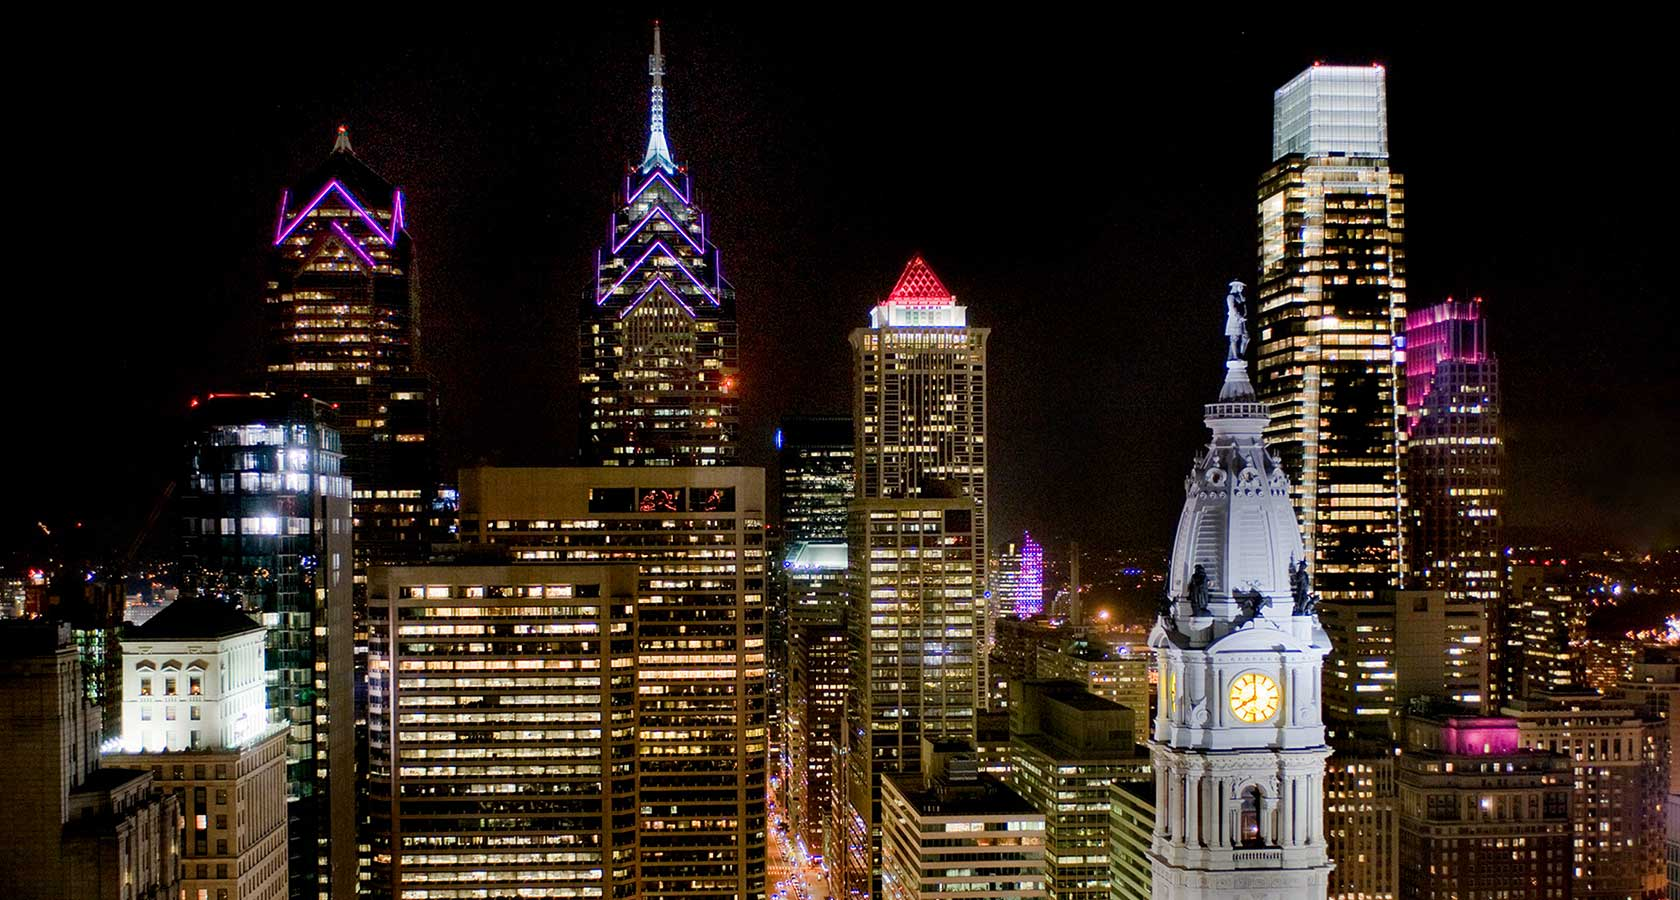 Philadelphia nightime skyline